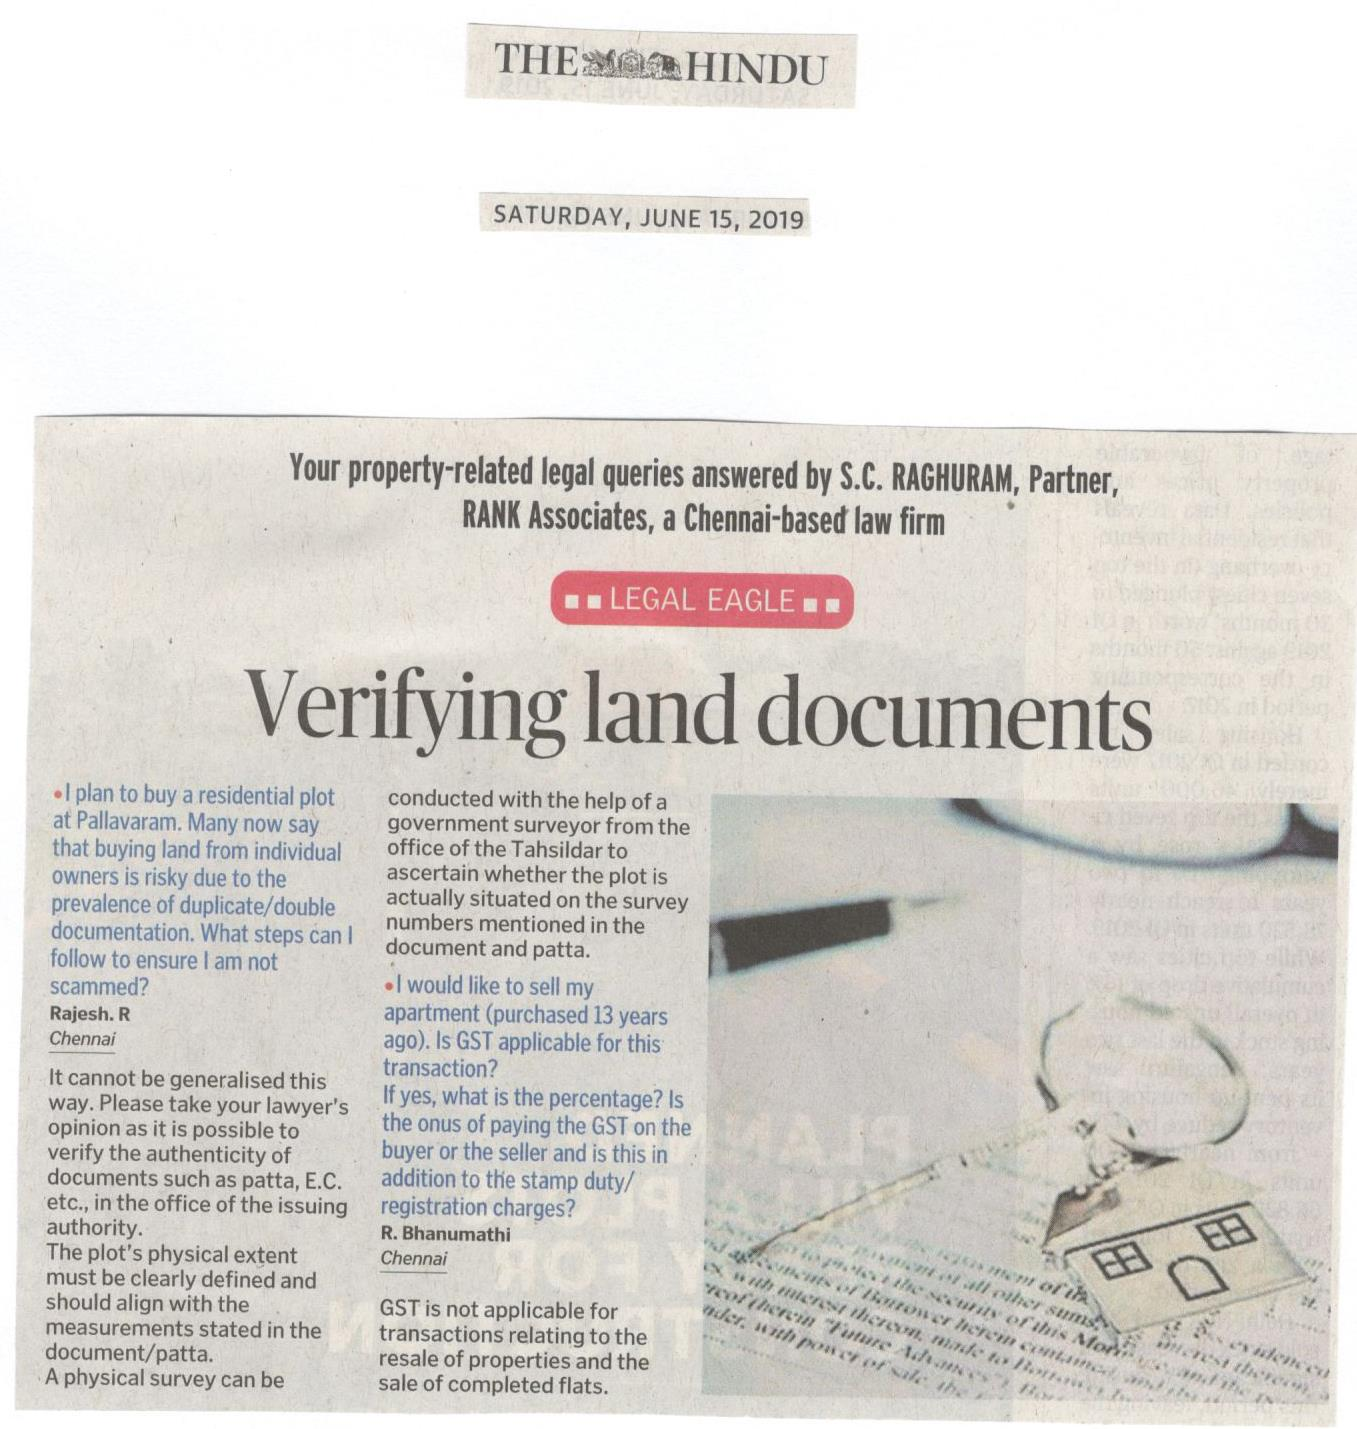 Verifying Land documents